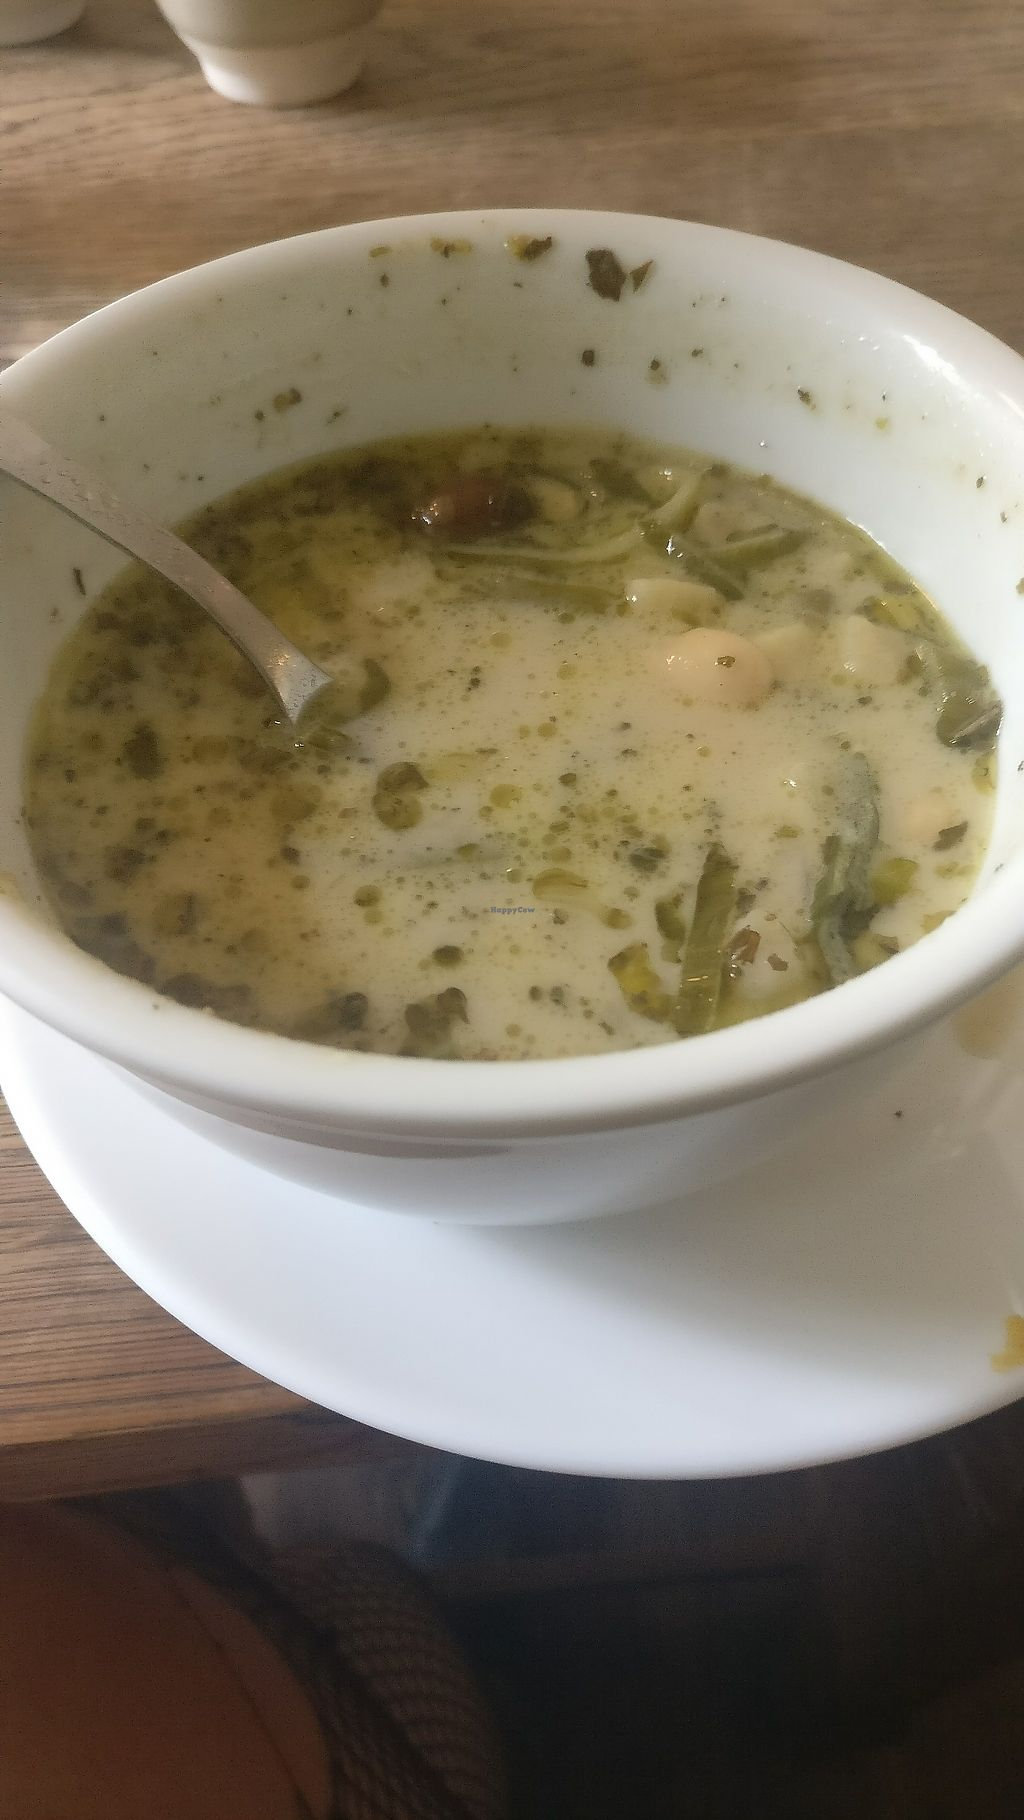 "Photo of Morgenstedet  by <a href=""/members/profile/VeganskJarvis"">VeganskJarvis</a> <br/>summer vegetable soup <br/> July 7, 2017  - <a href='/contact/abuse/image/617/277439'>Report</a>"